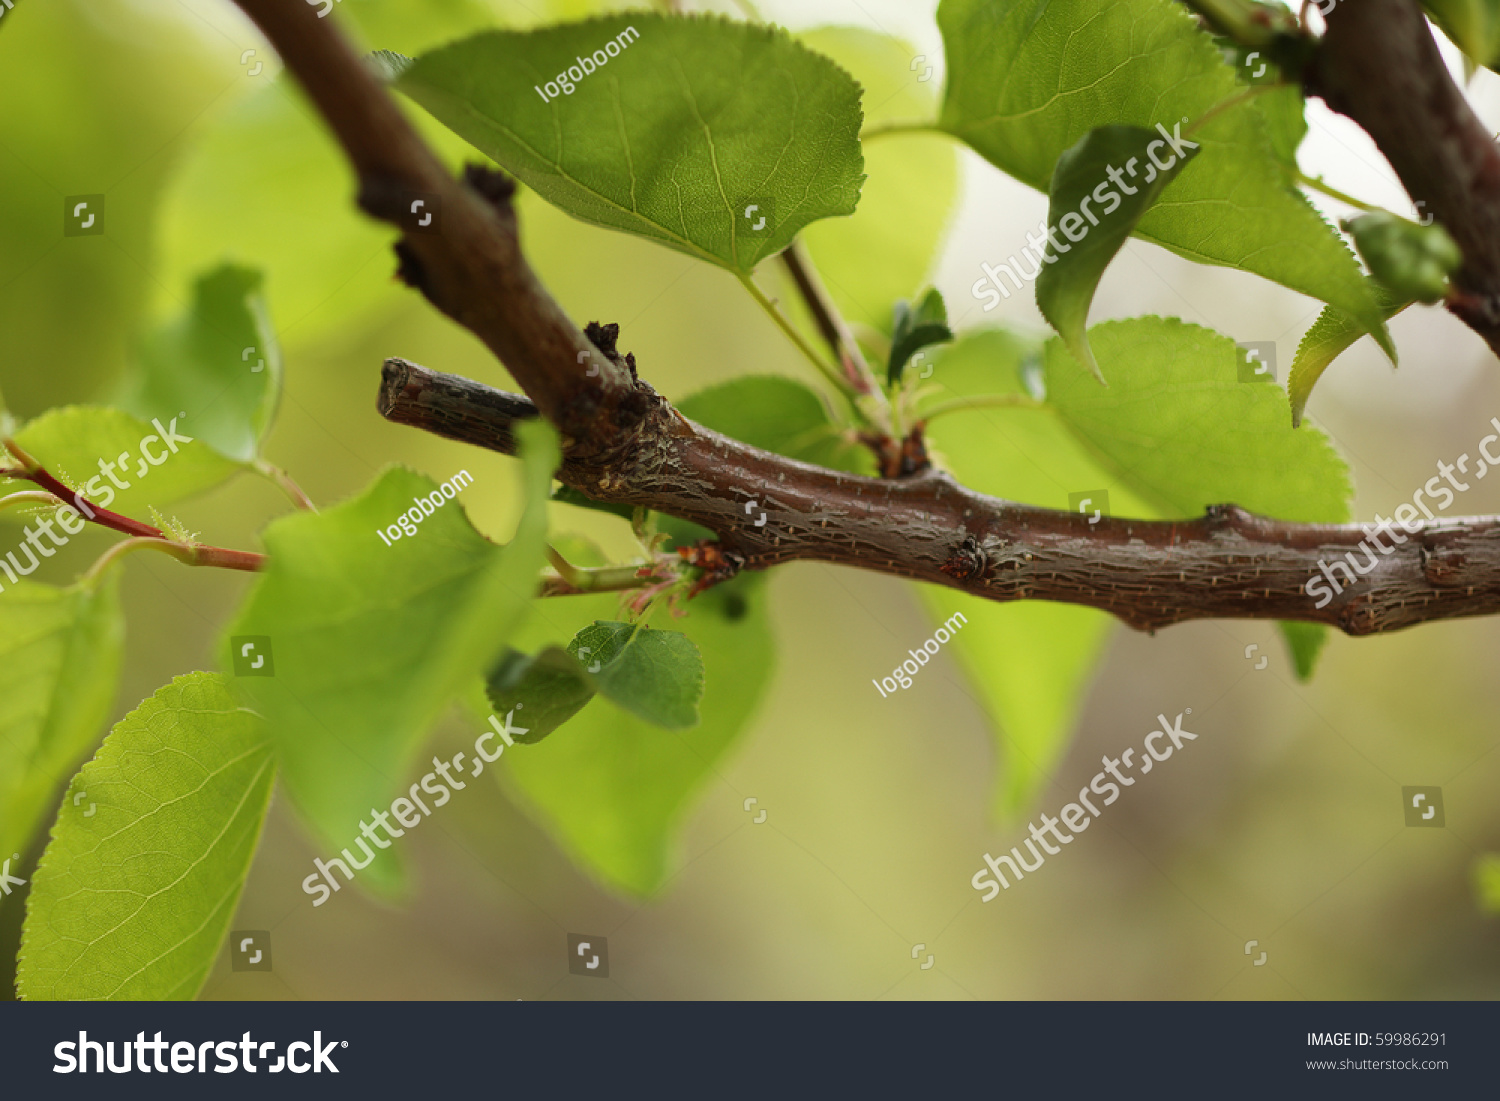 Pruned Tree Branch With Green Leaves. Close-Up, Shallow ...